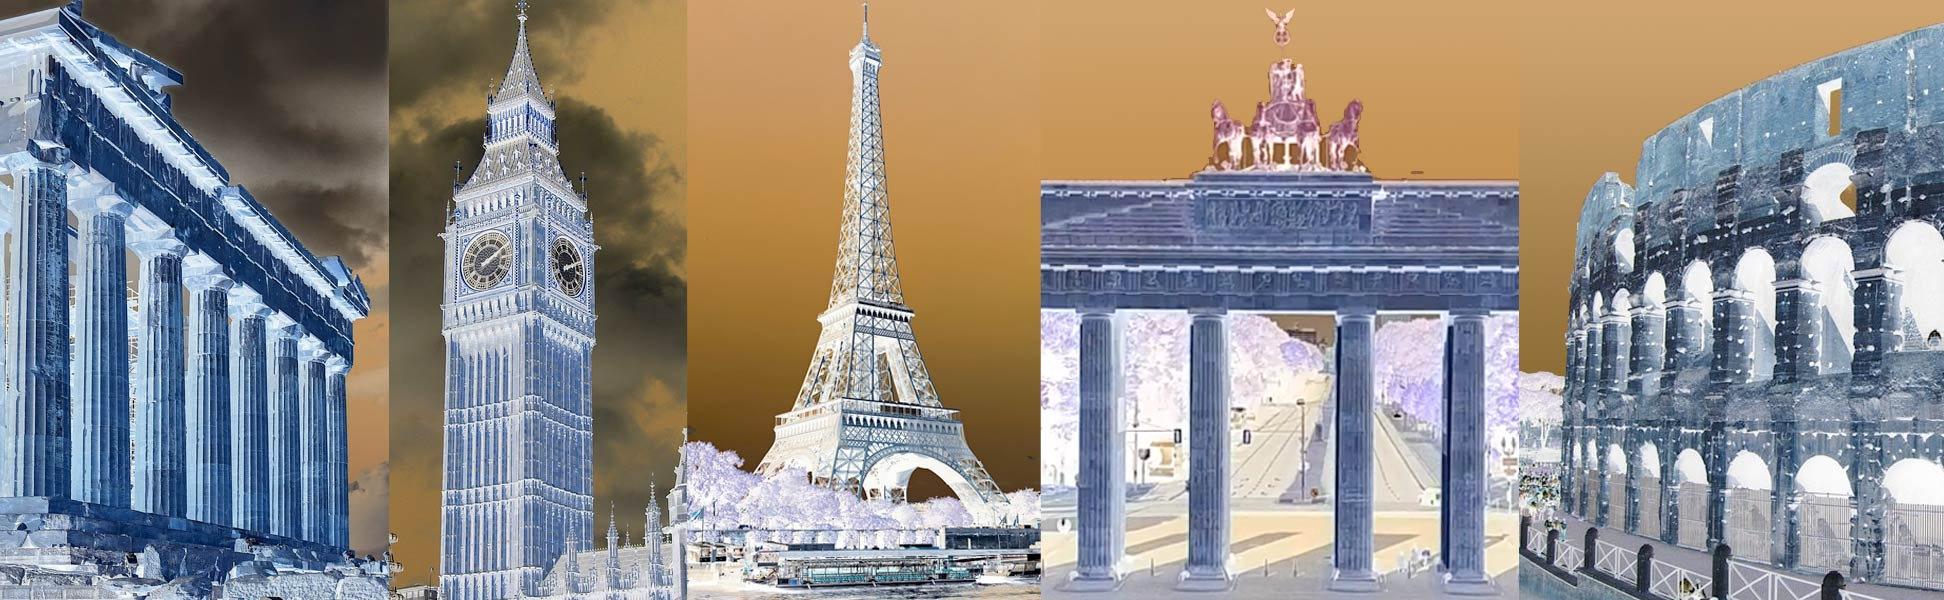 Buildings of European Capitals: Athens, Greece; London, UK; Paris, France; Berlin, Germany; and Rome in Italy